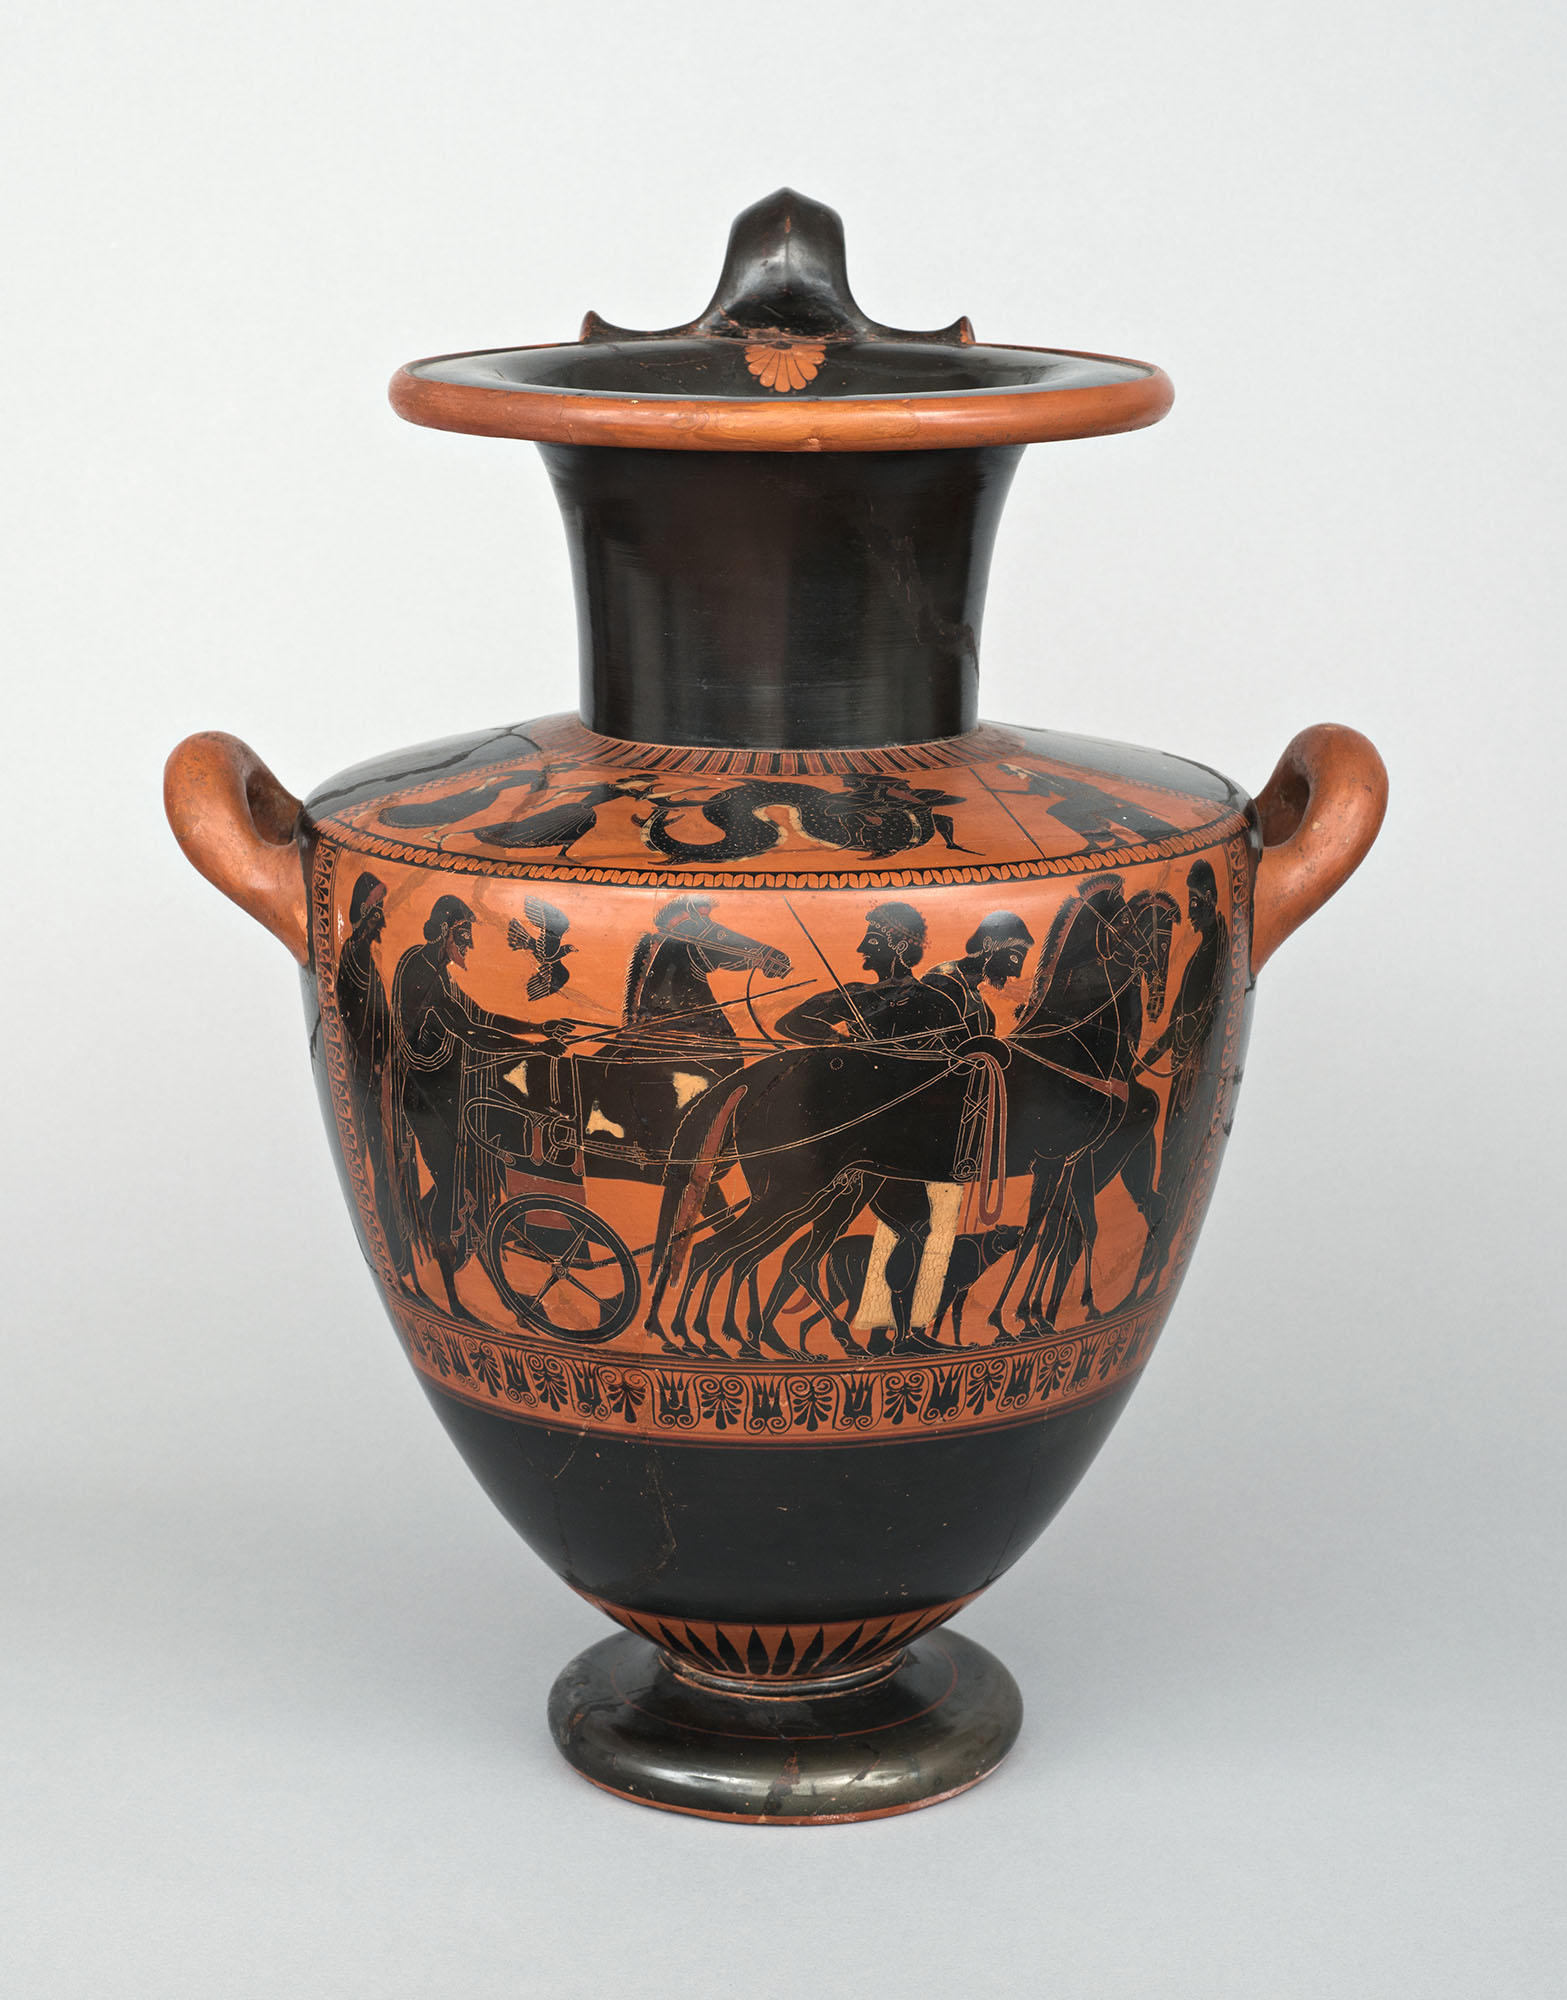 Hydria Greece, Athens, c. 530–500 B.C.E. Psiax Clay, wheelmade, black-figure painted; 18 1/2 x 15 1/2 in. Wadsworth Atheneum Museum of Art The Ella Gallup Sumner and Mary Catlin Sumner Collection Fund, 1961.8